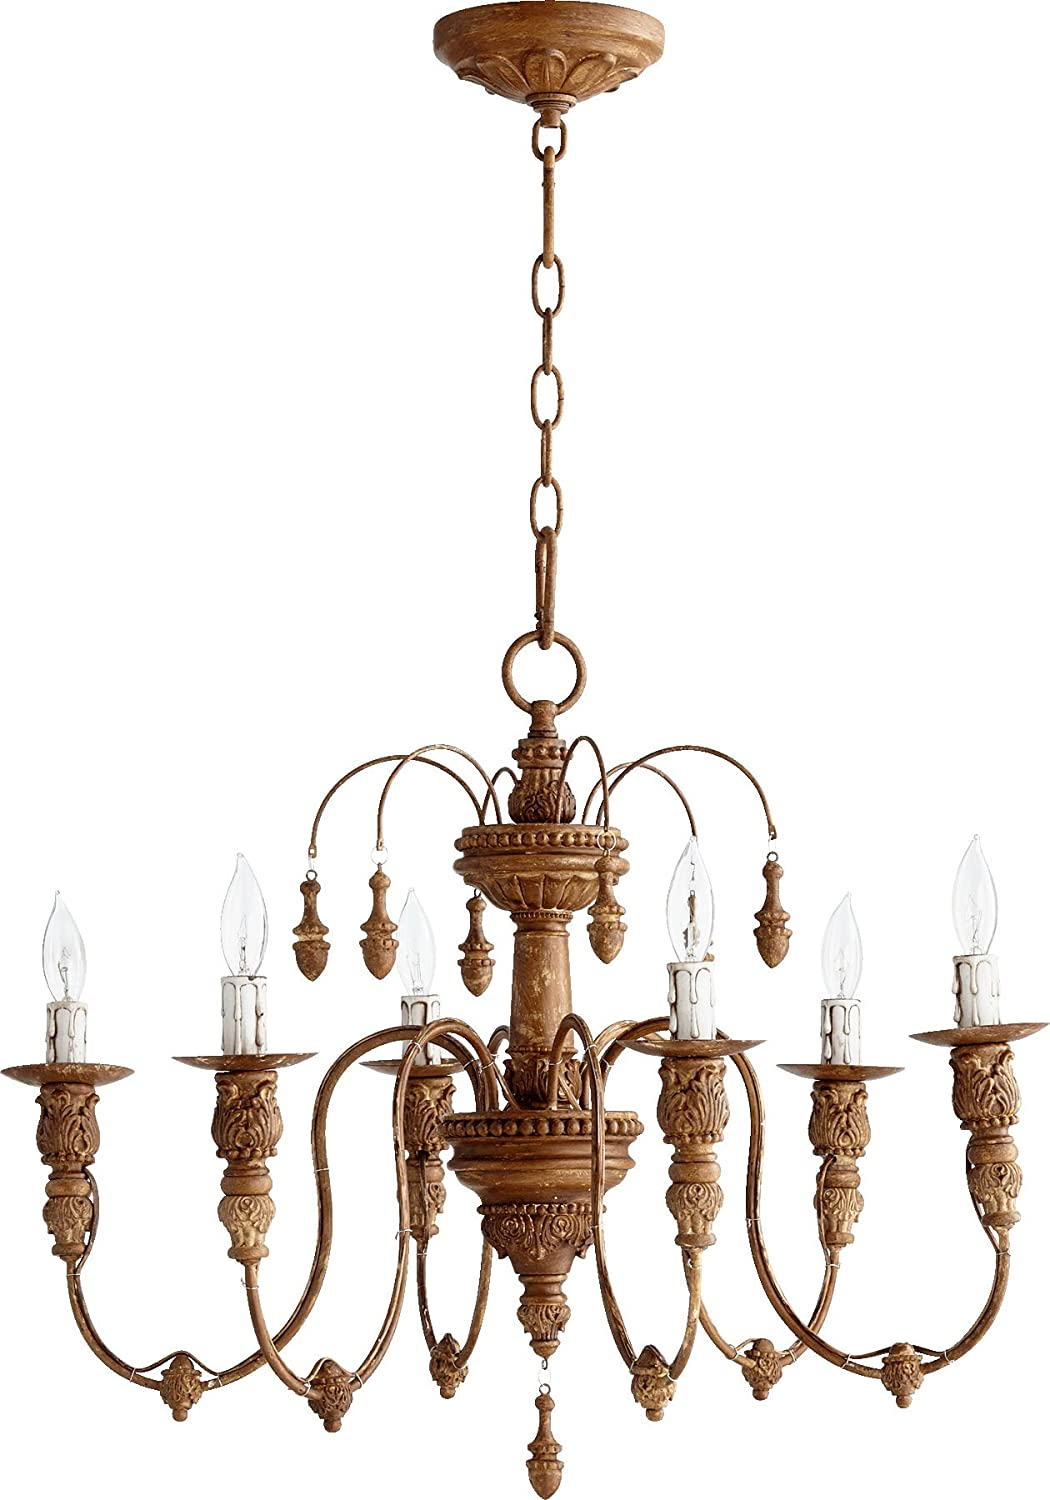 Quorum lighting 6316 6 94 salento 1 tier chandelier lighting 6lt 120 watts french umber amazon com